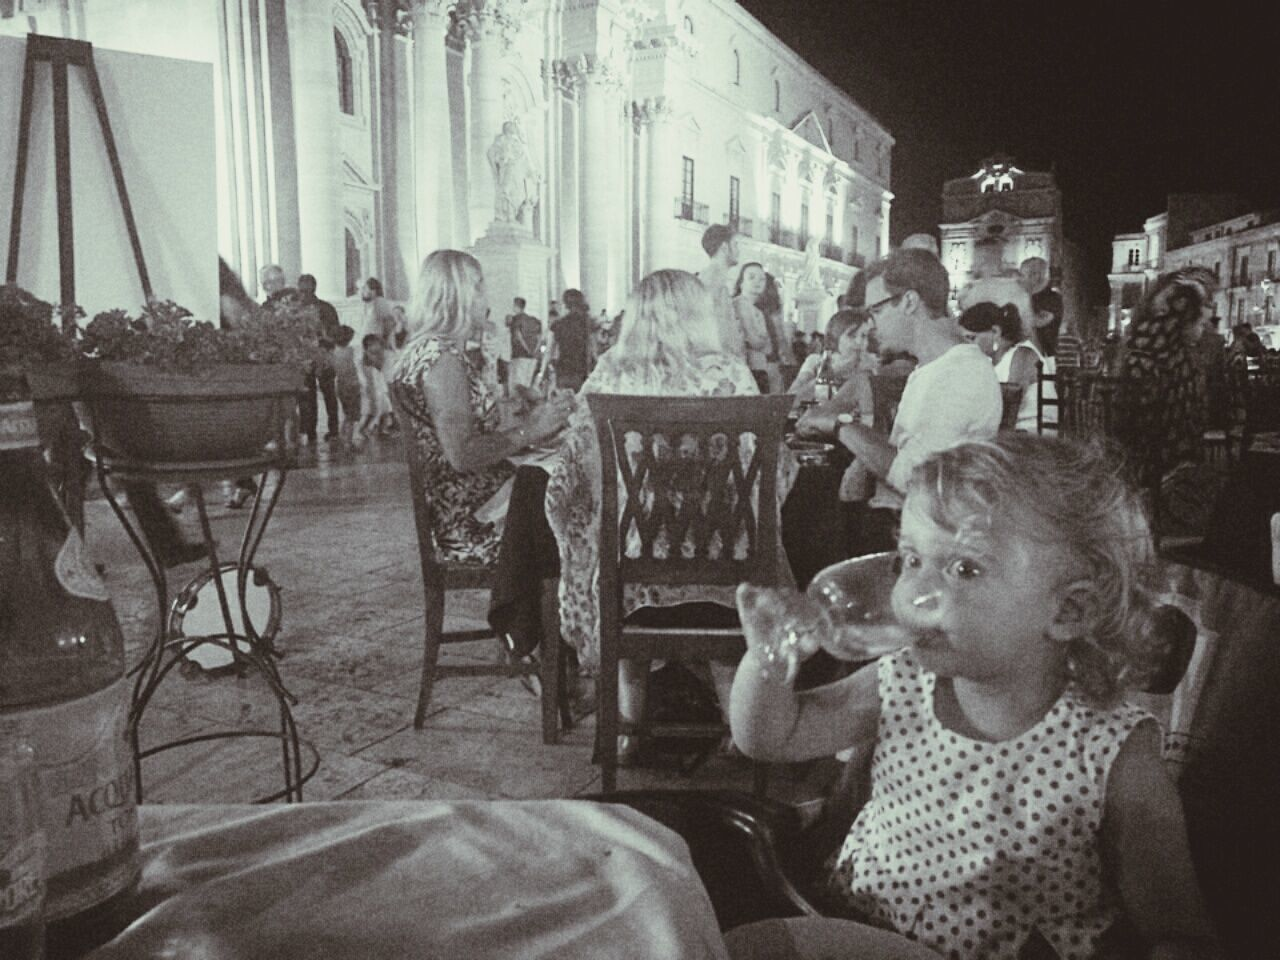 Baby Toddler  Toddlerlife Glamor Baby Glamour Baby Pinkie Finger Proper Baby Drinking Night Black And White Photography Siracusa